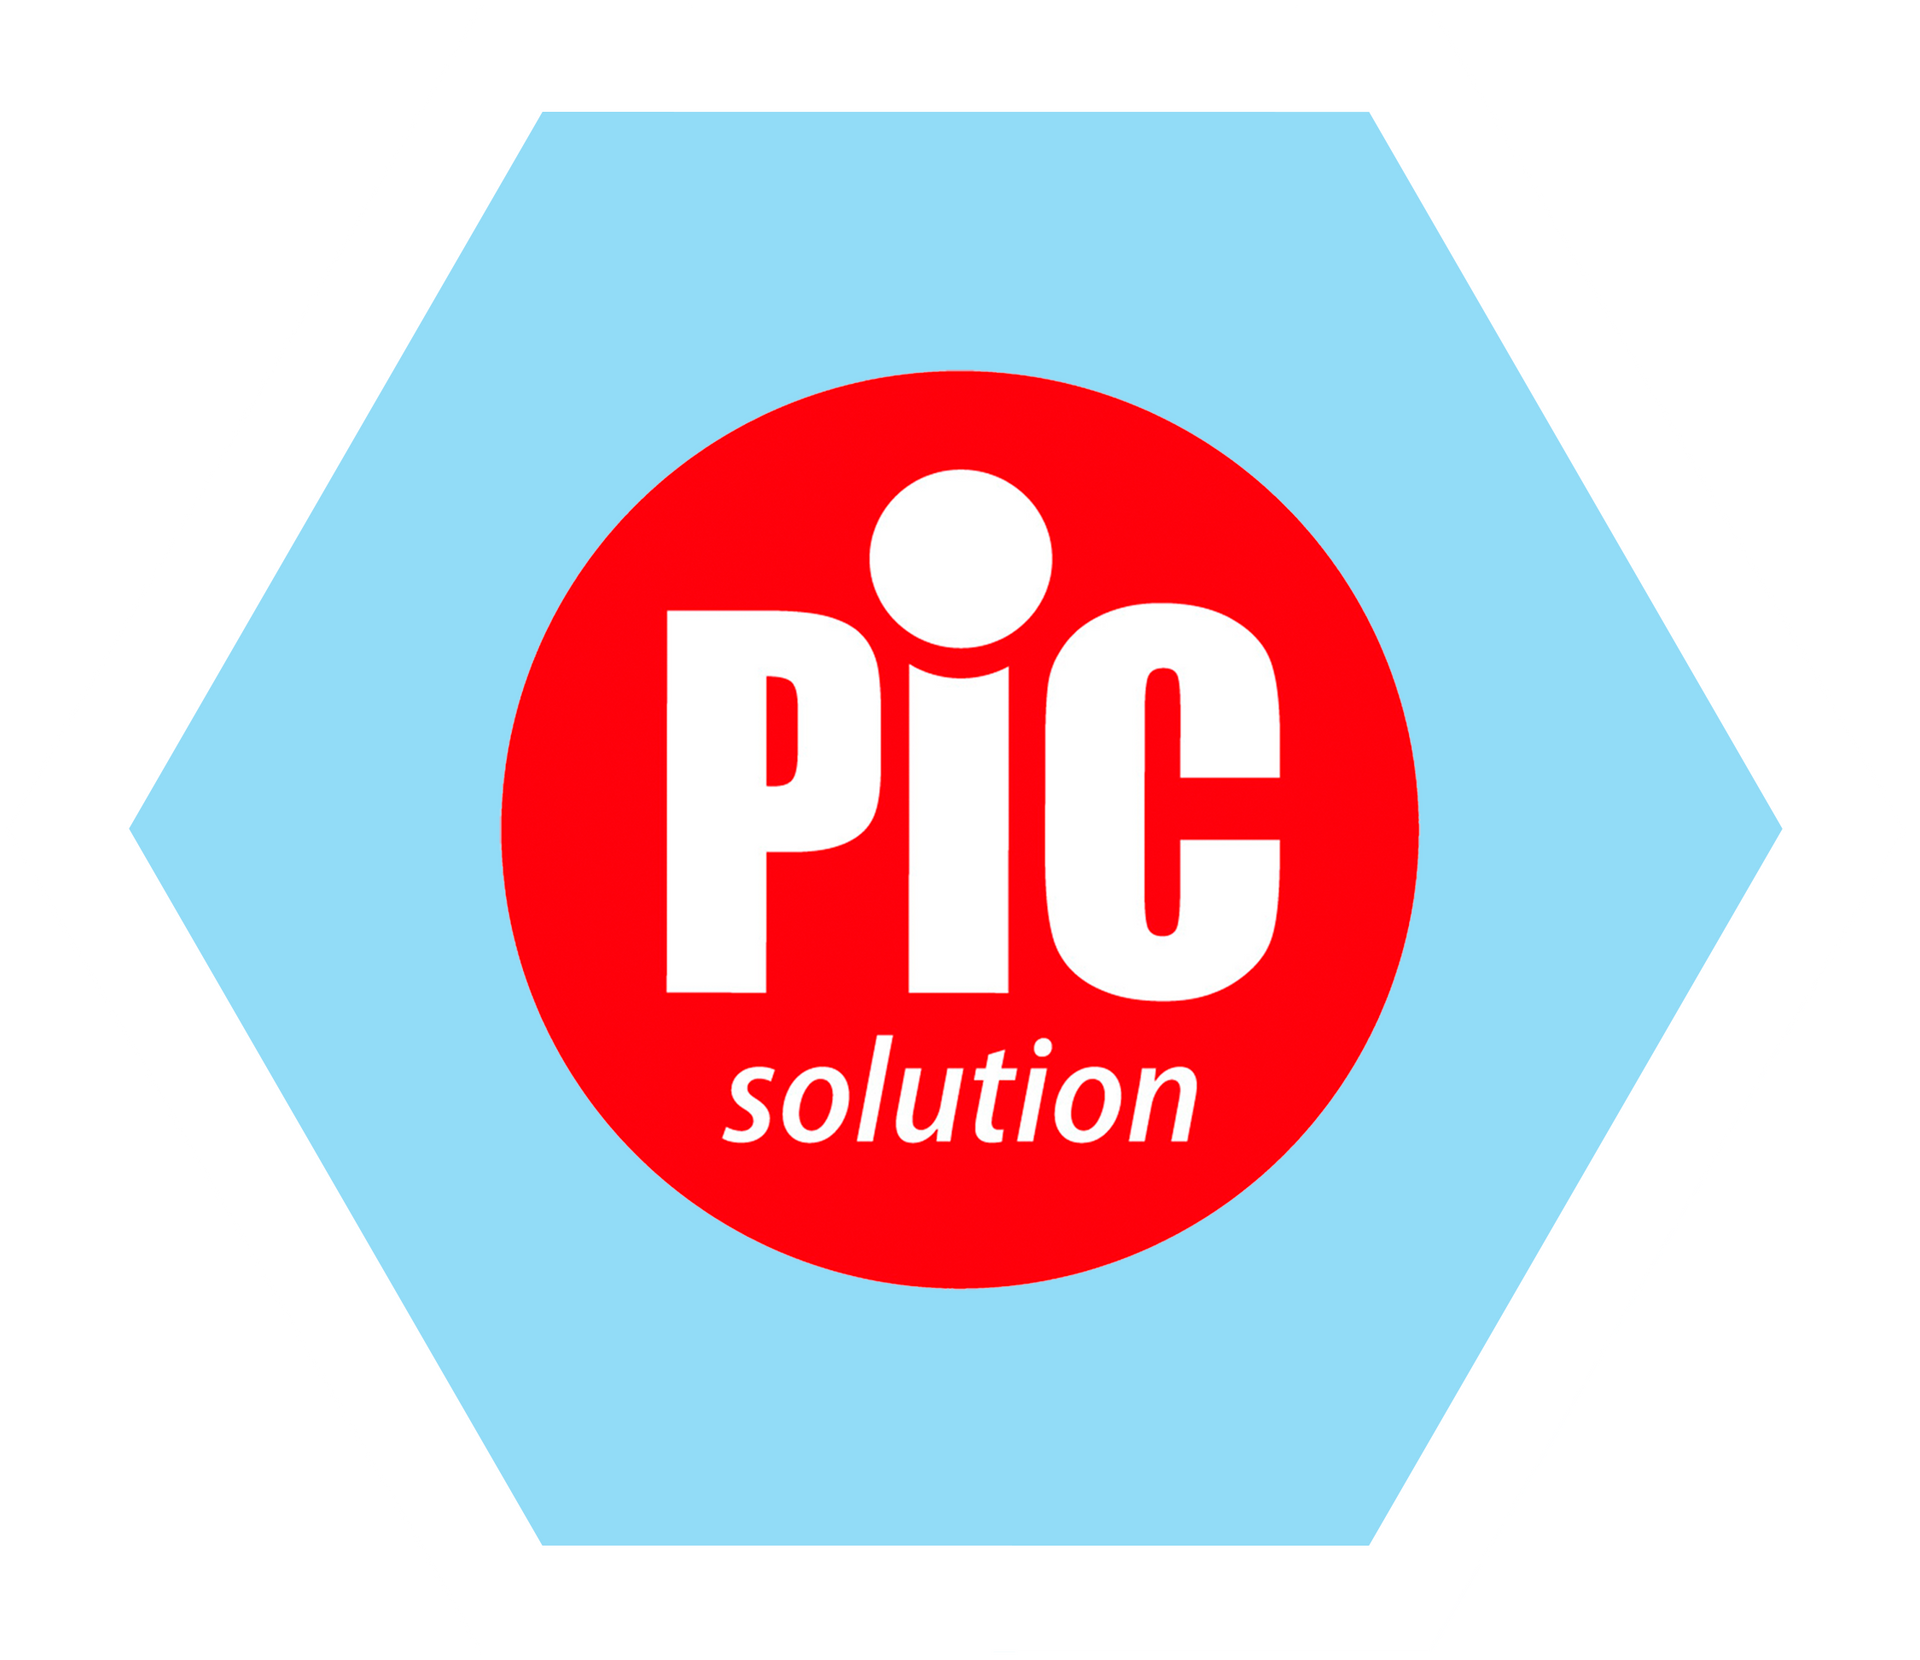 Logo LHS Picsolution.png